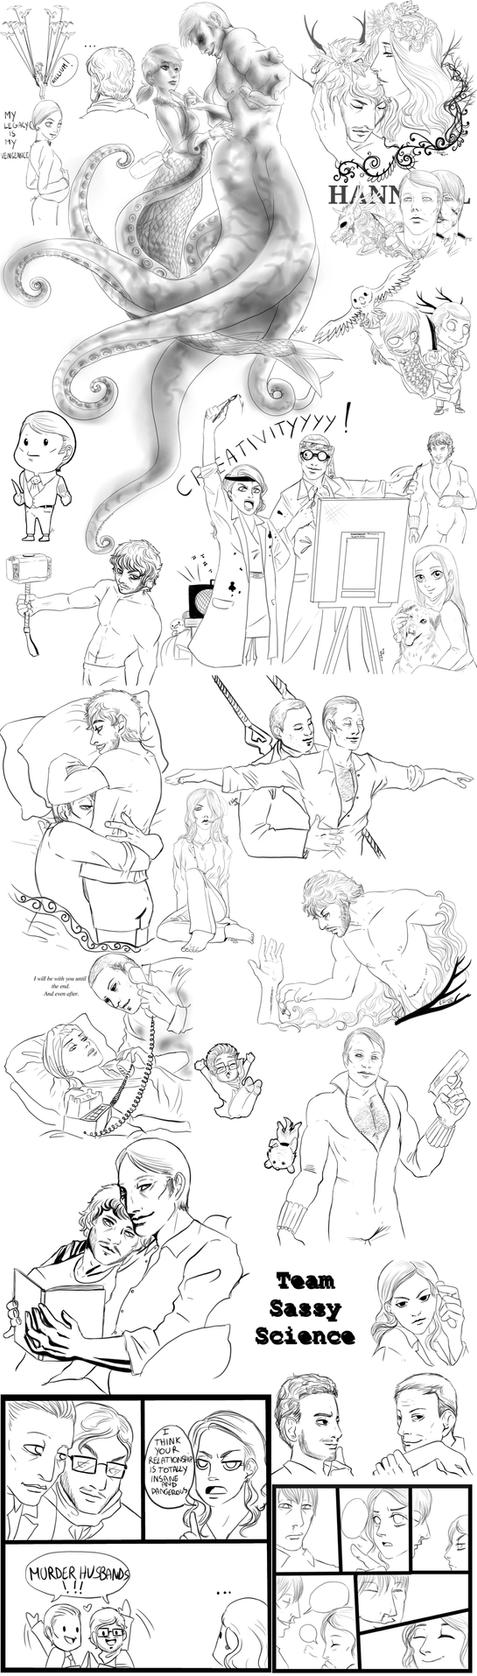 Hannibal sketches 23 by FuriarossaAndMimma